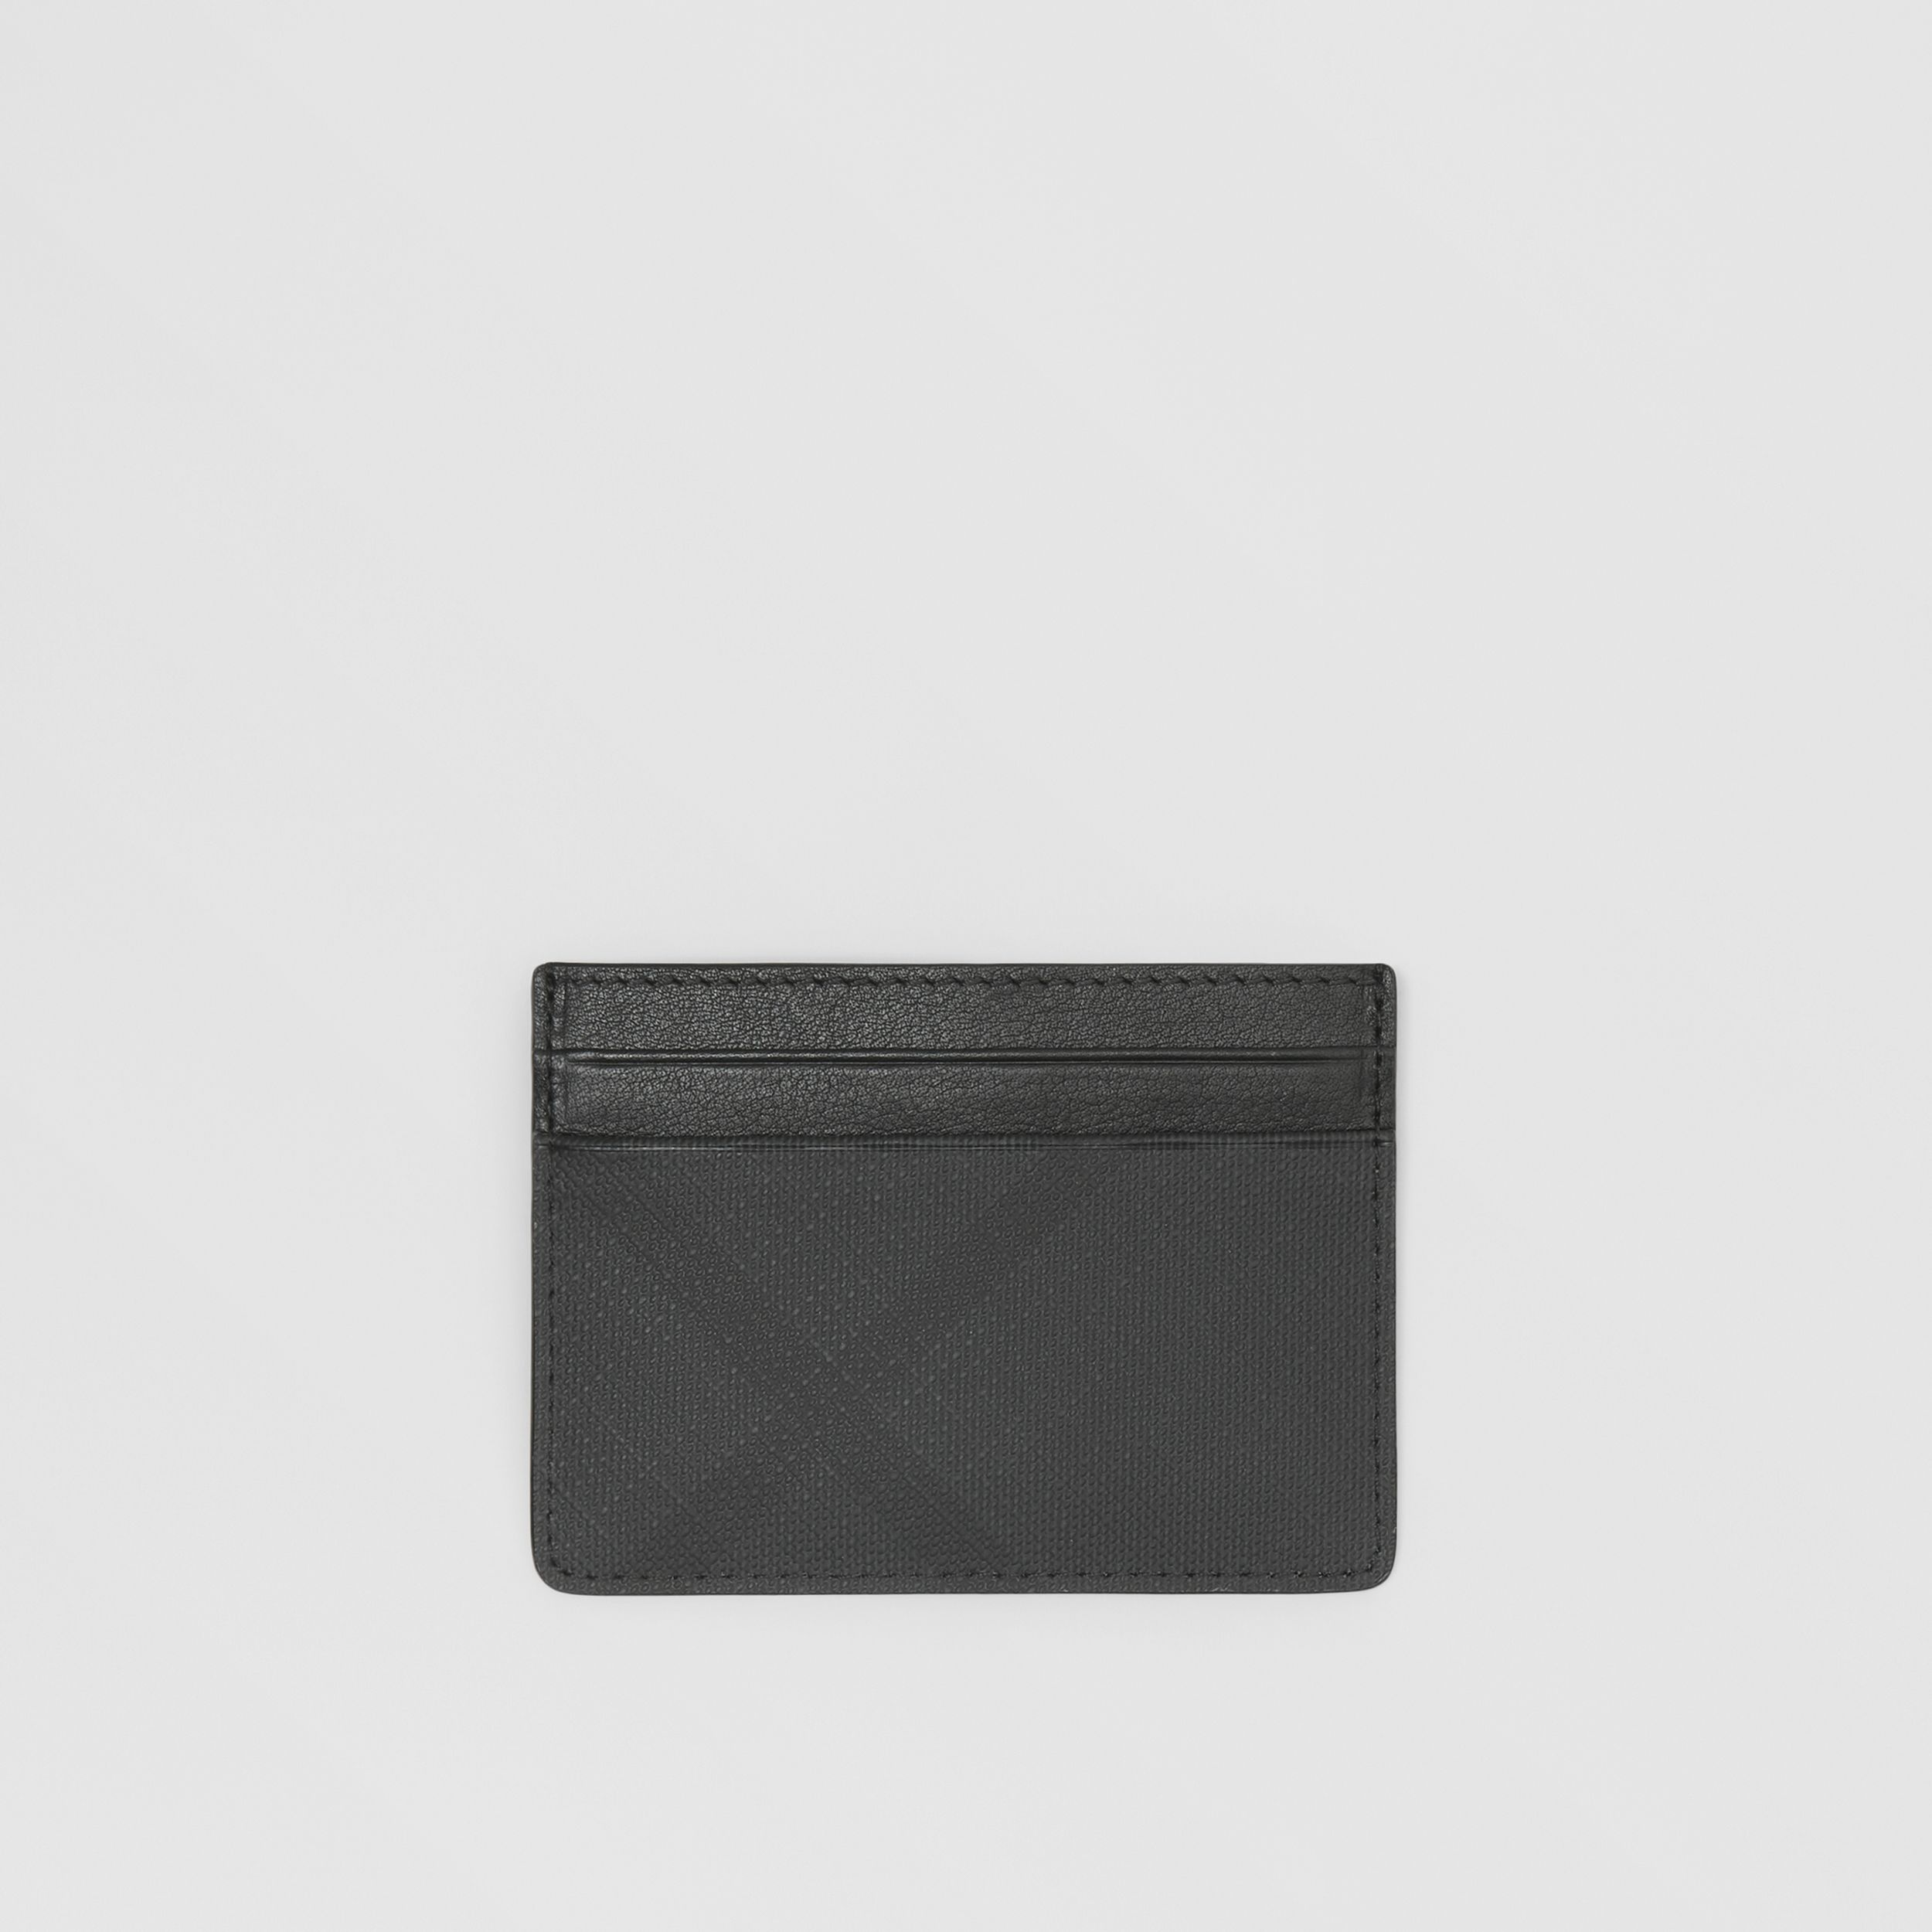 London Check and Leather Card Case in Dark Charcoal - Men | Burberry United States - 1